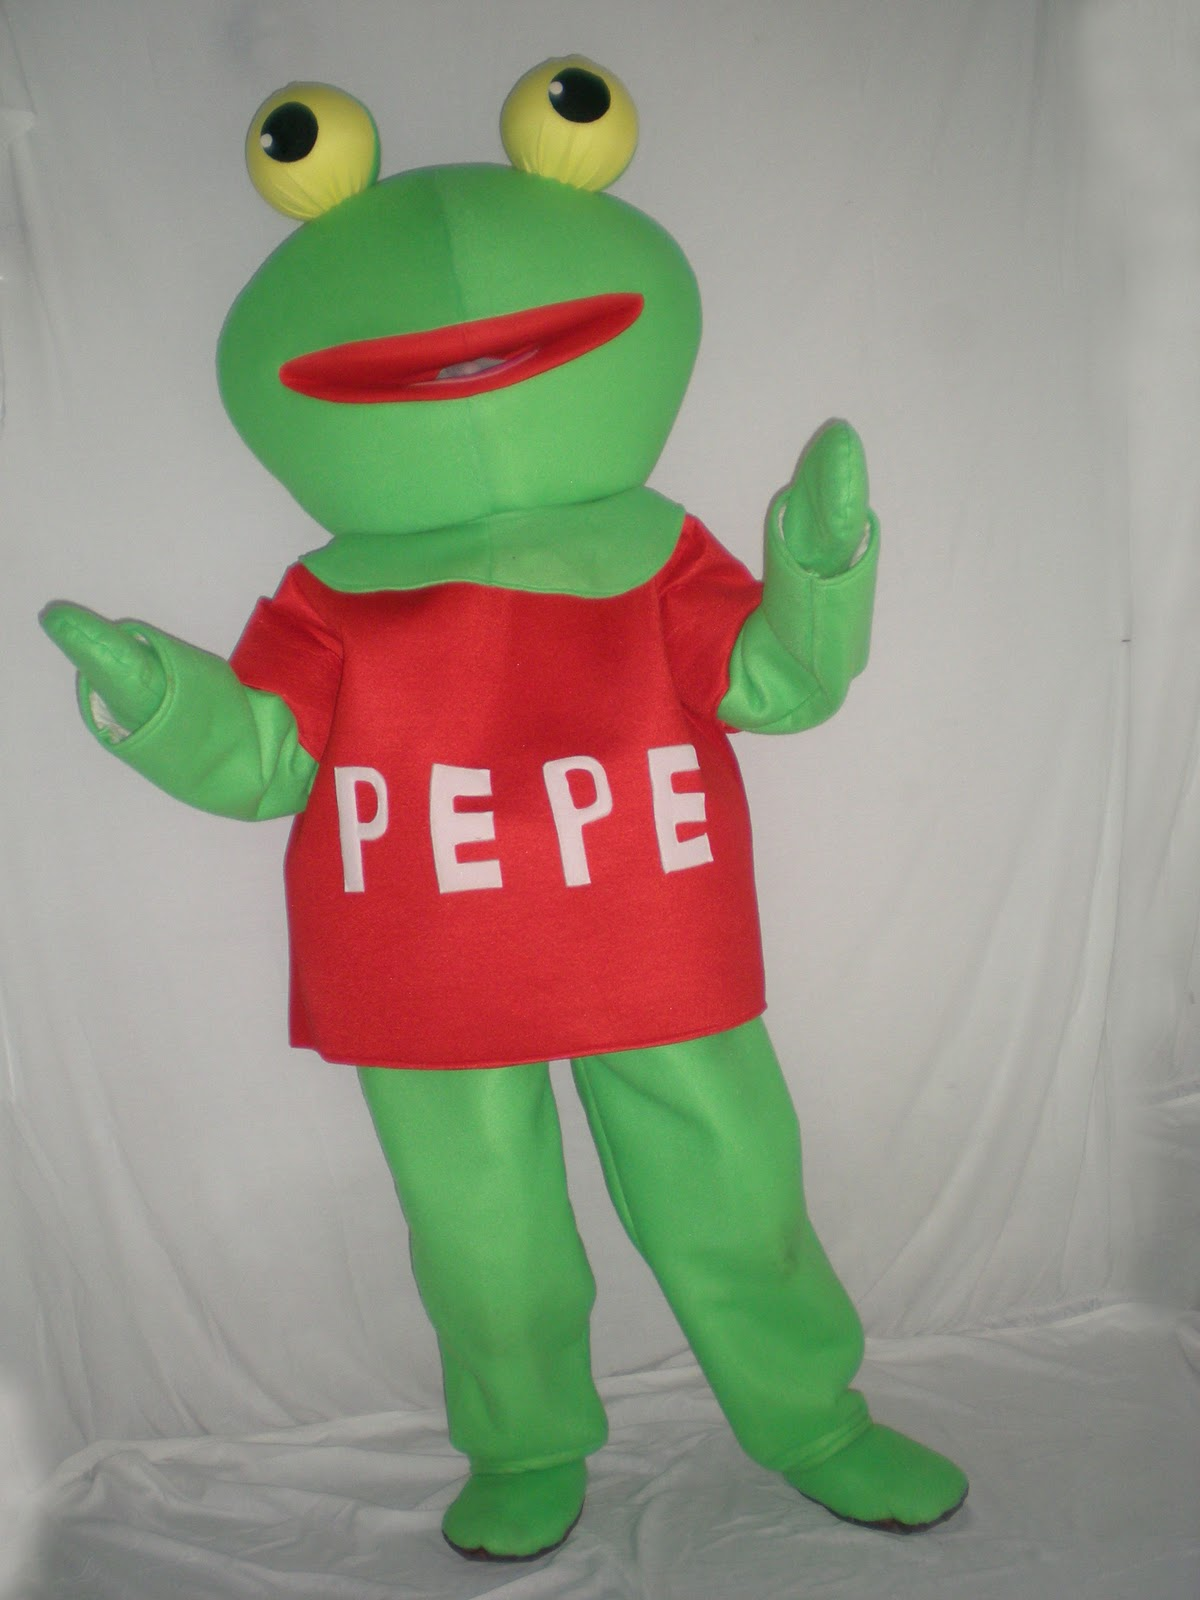 sapo pepe 5 - photo #8